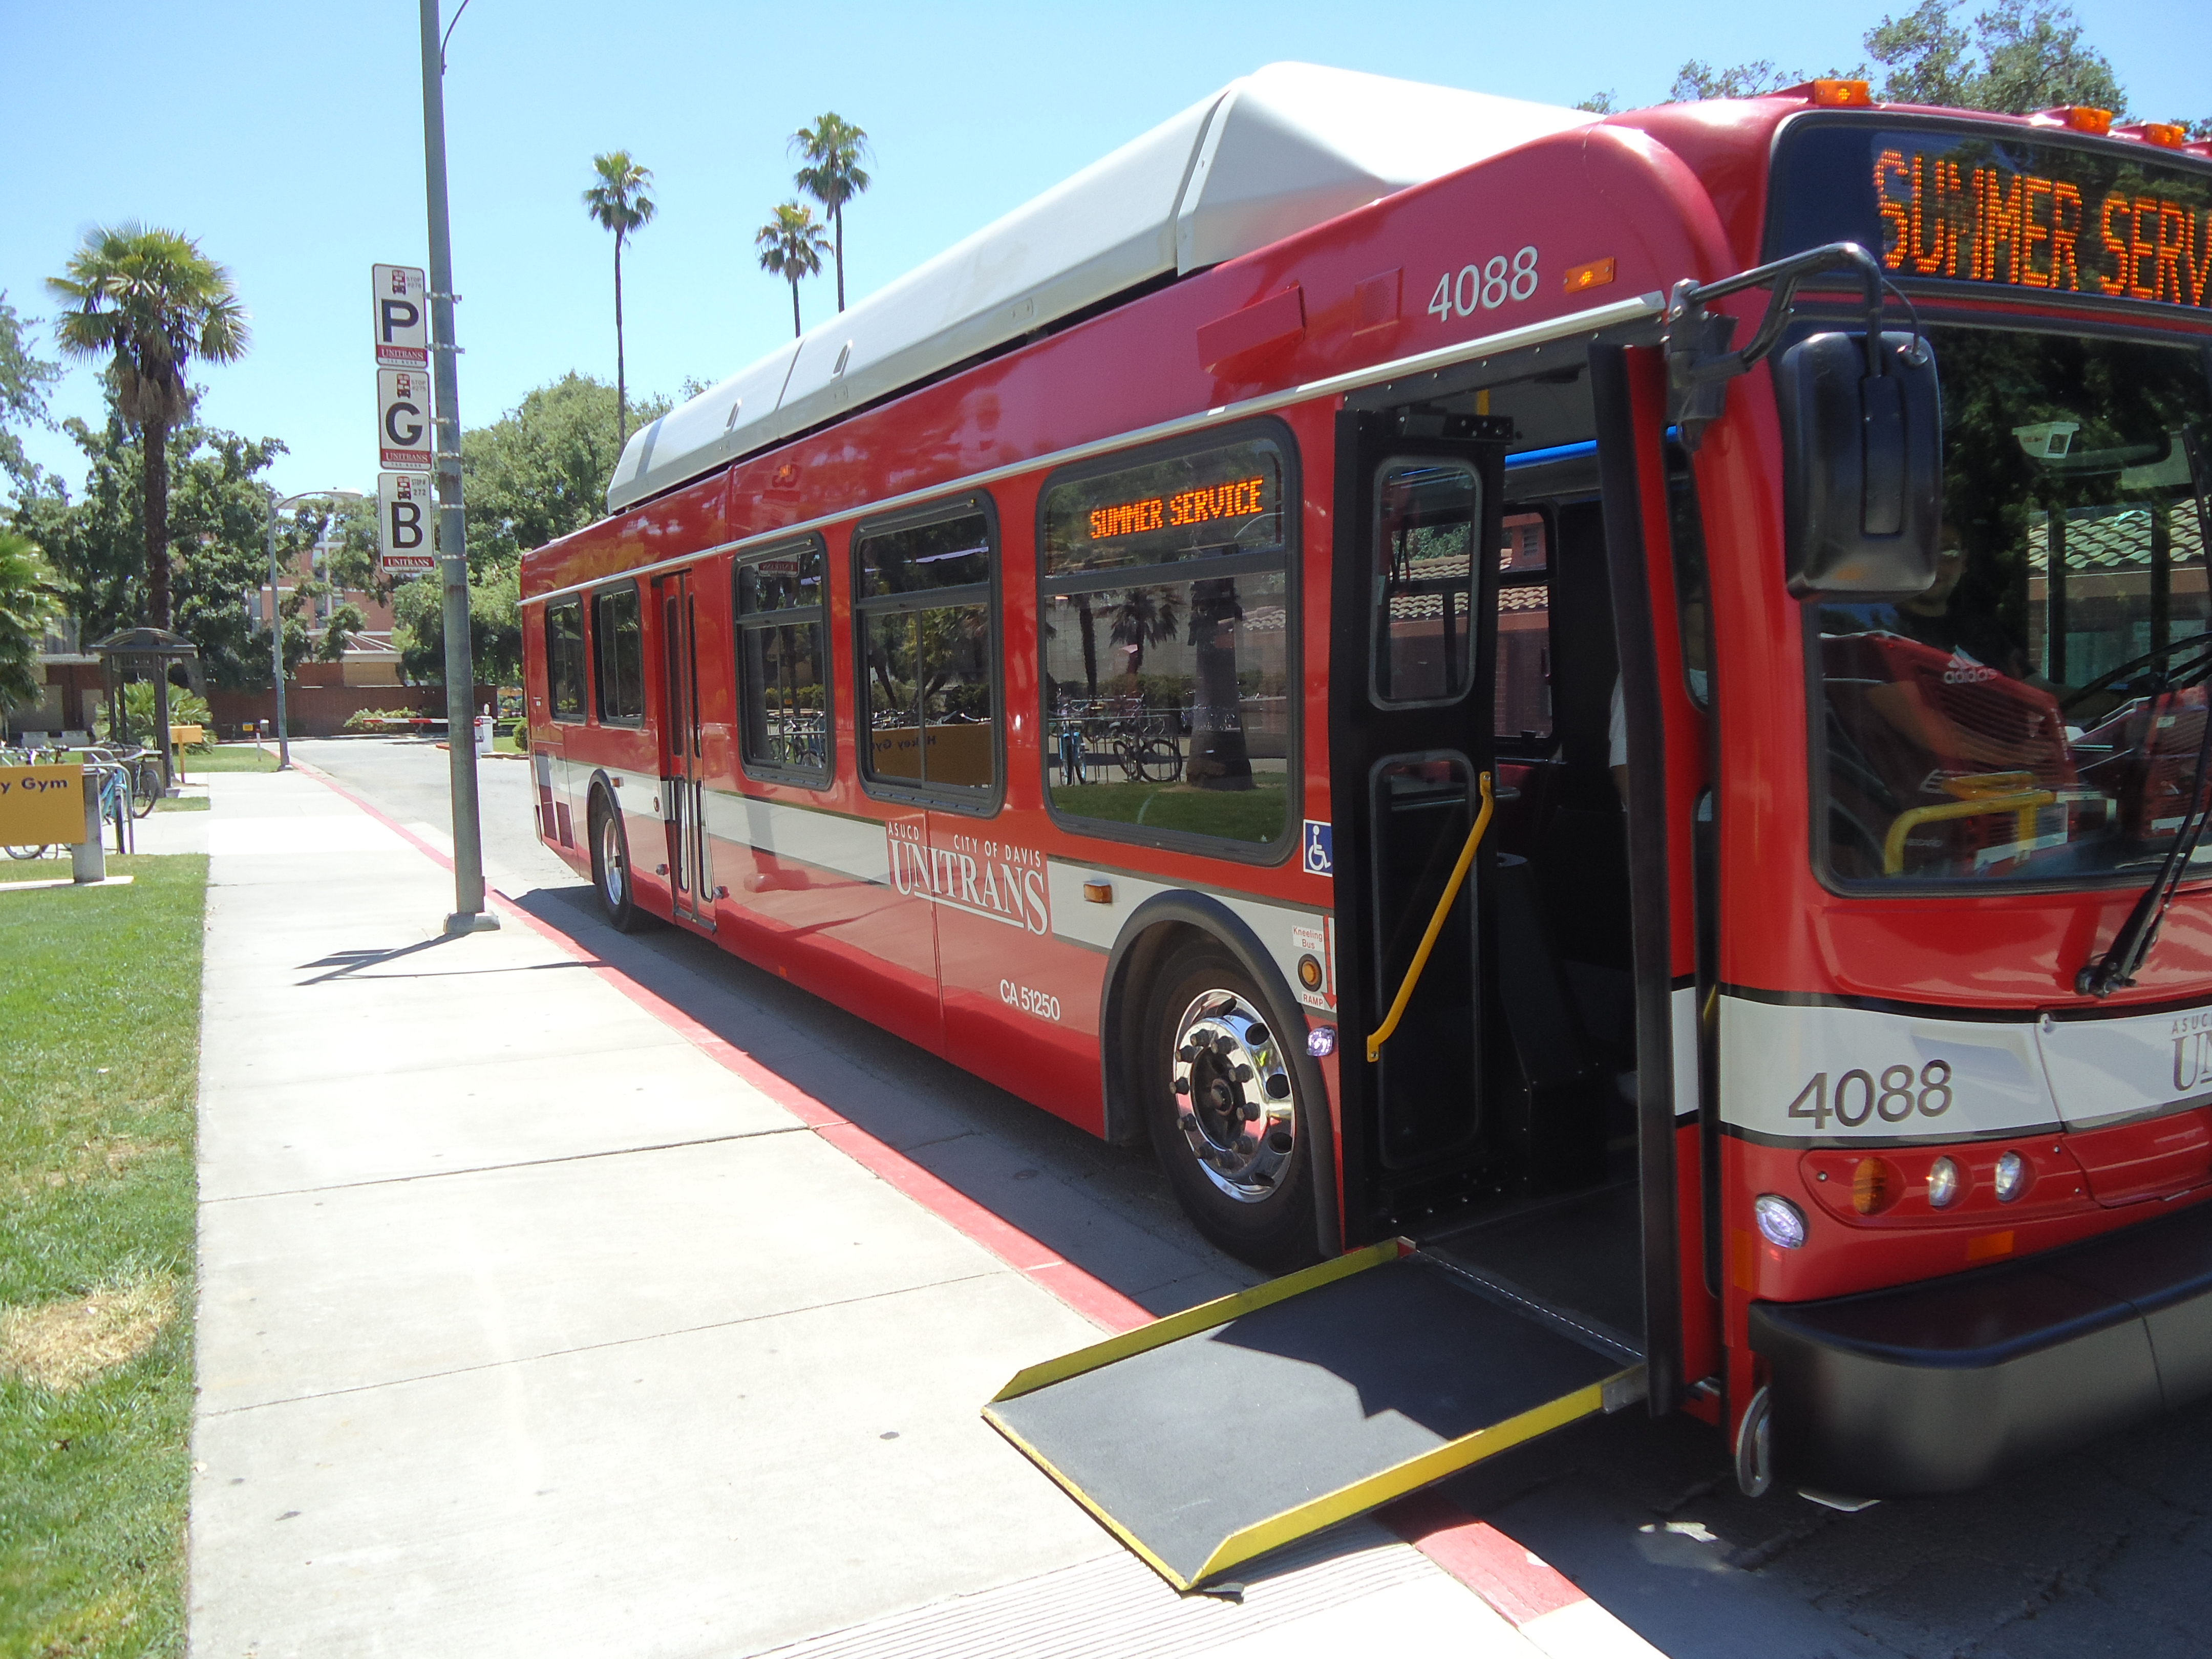 UC Davis bus with service ramp extended